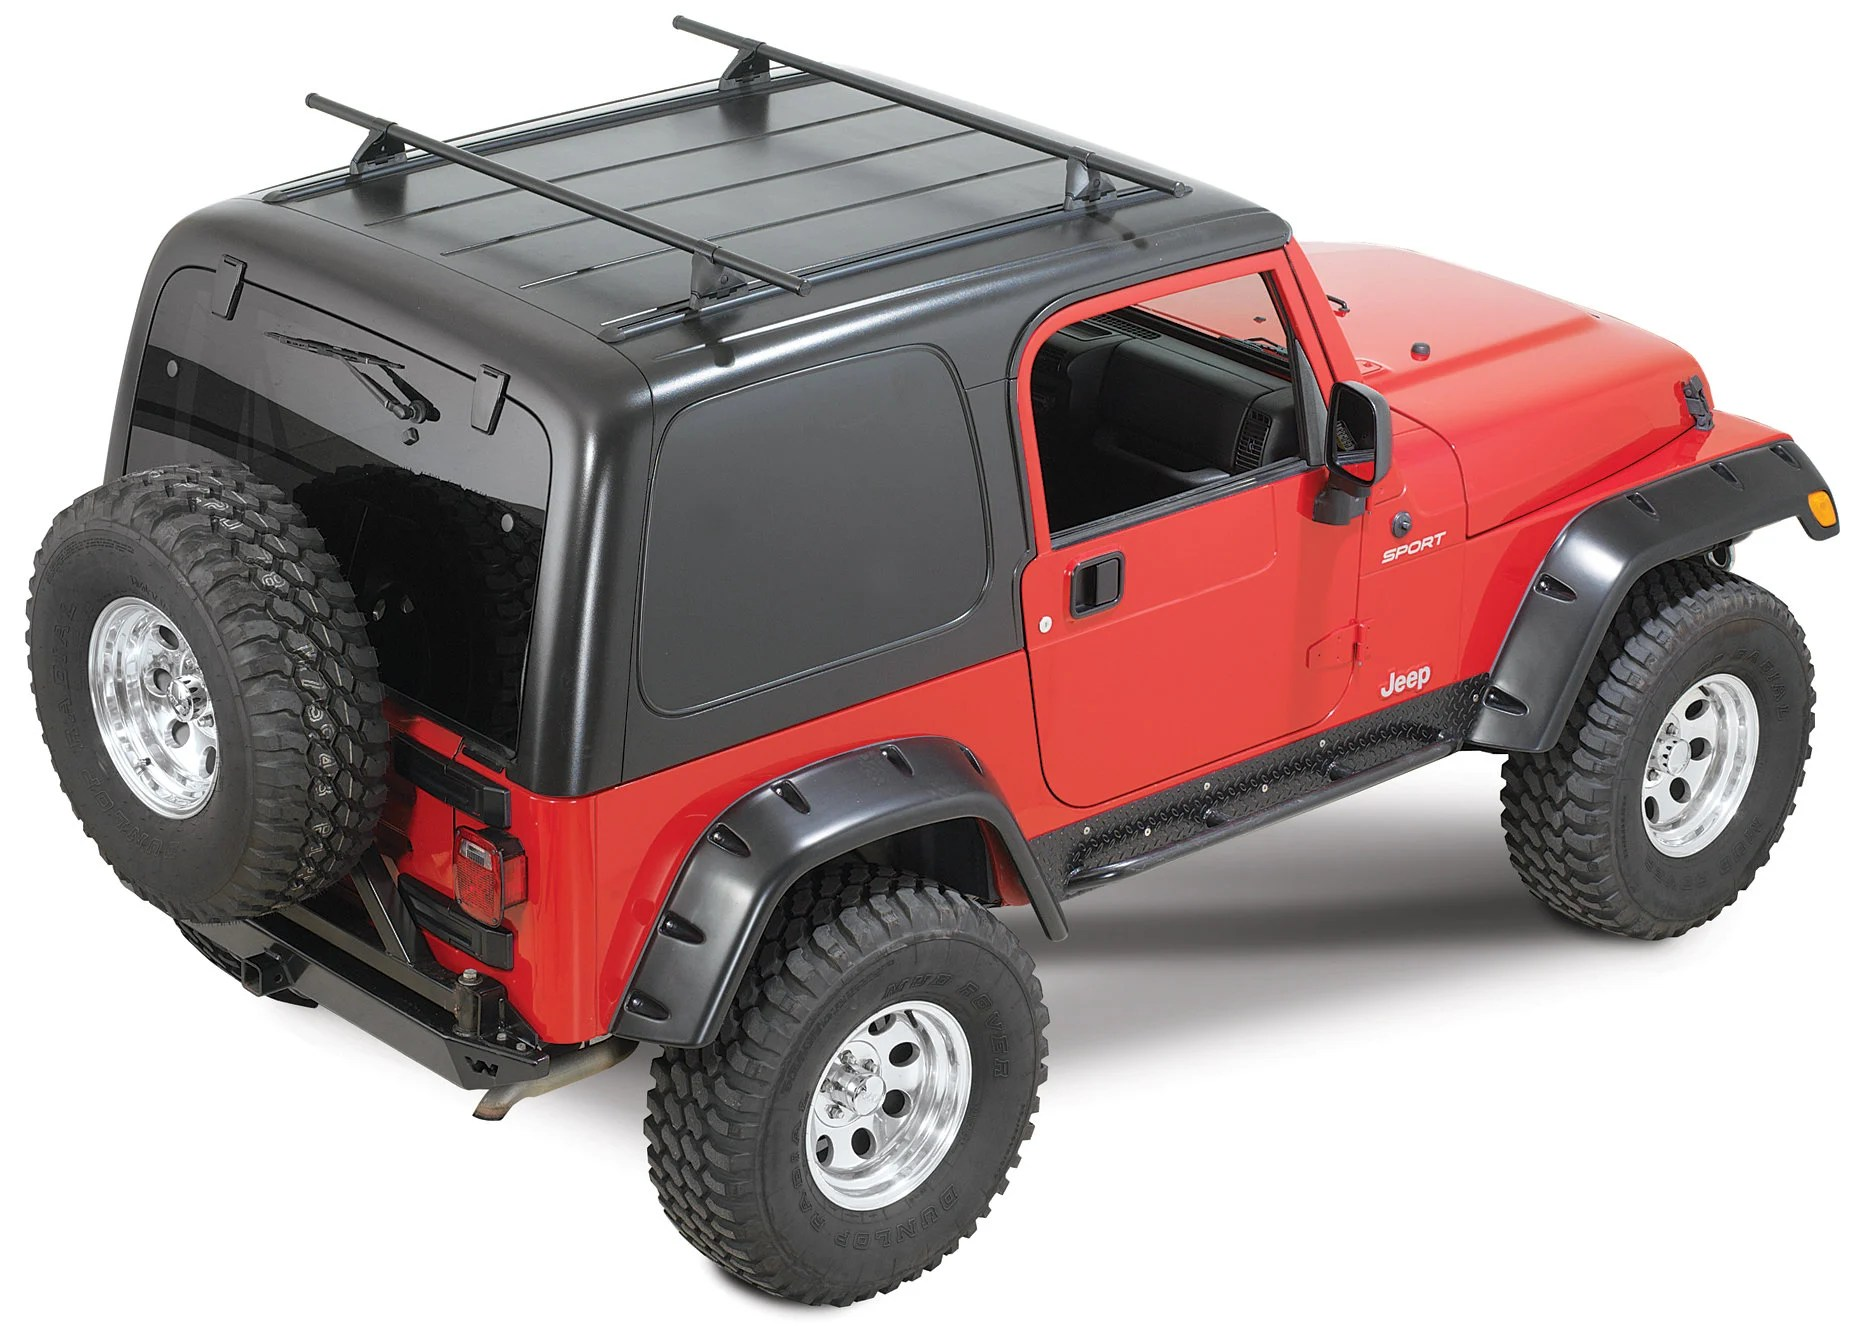 yakima overhead rack systems for 87 06 jeep wrangler yj tj unlimited